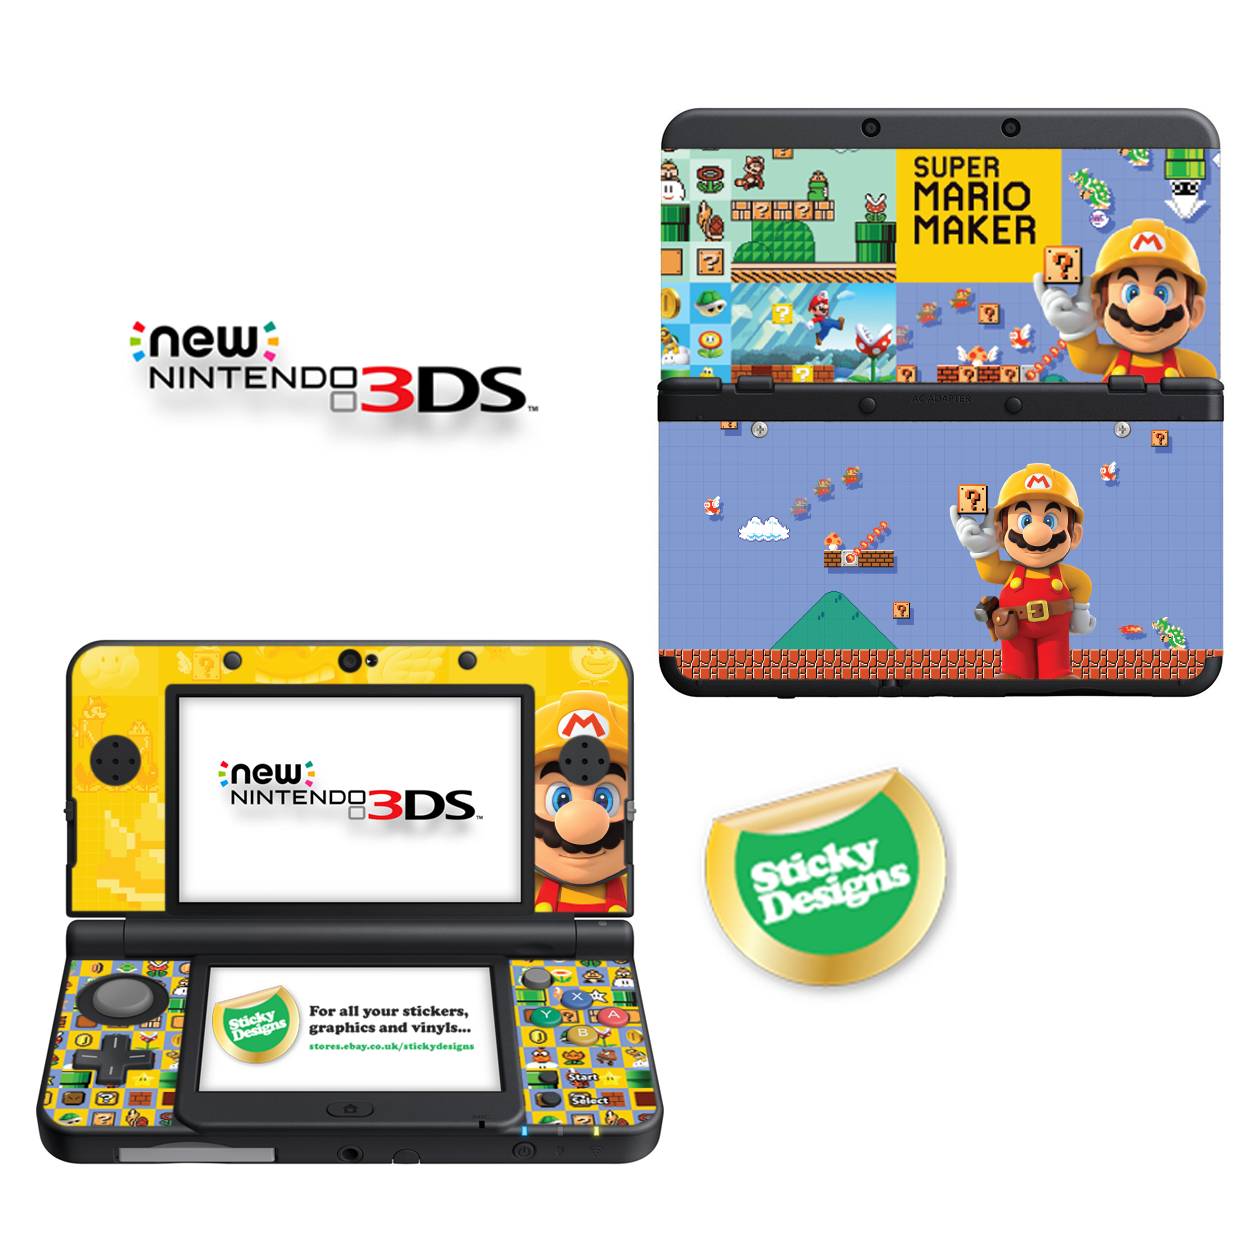 super mario maker vinyl skin sticker for new nintendo 3ds with c high quality vinyl skin sticker for new nintendo 3ds with c stick and replaceable cover plates depicts high quality imagery of super mario maker